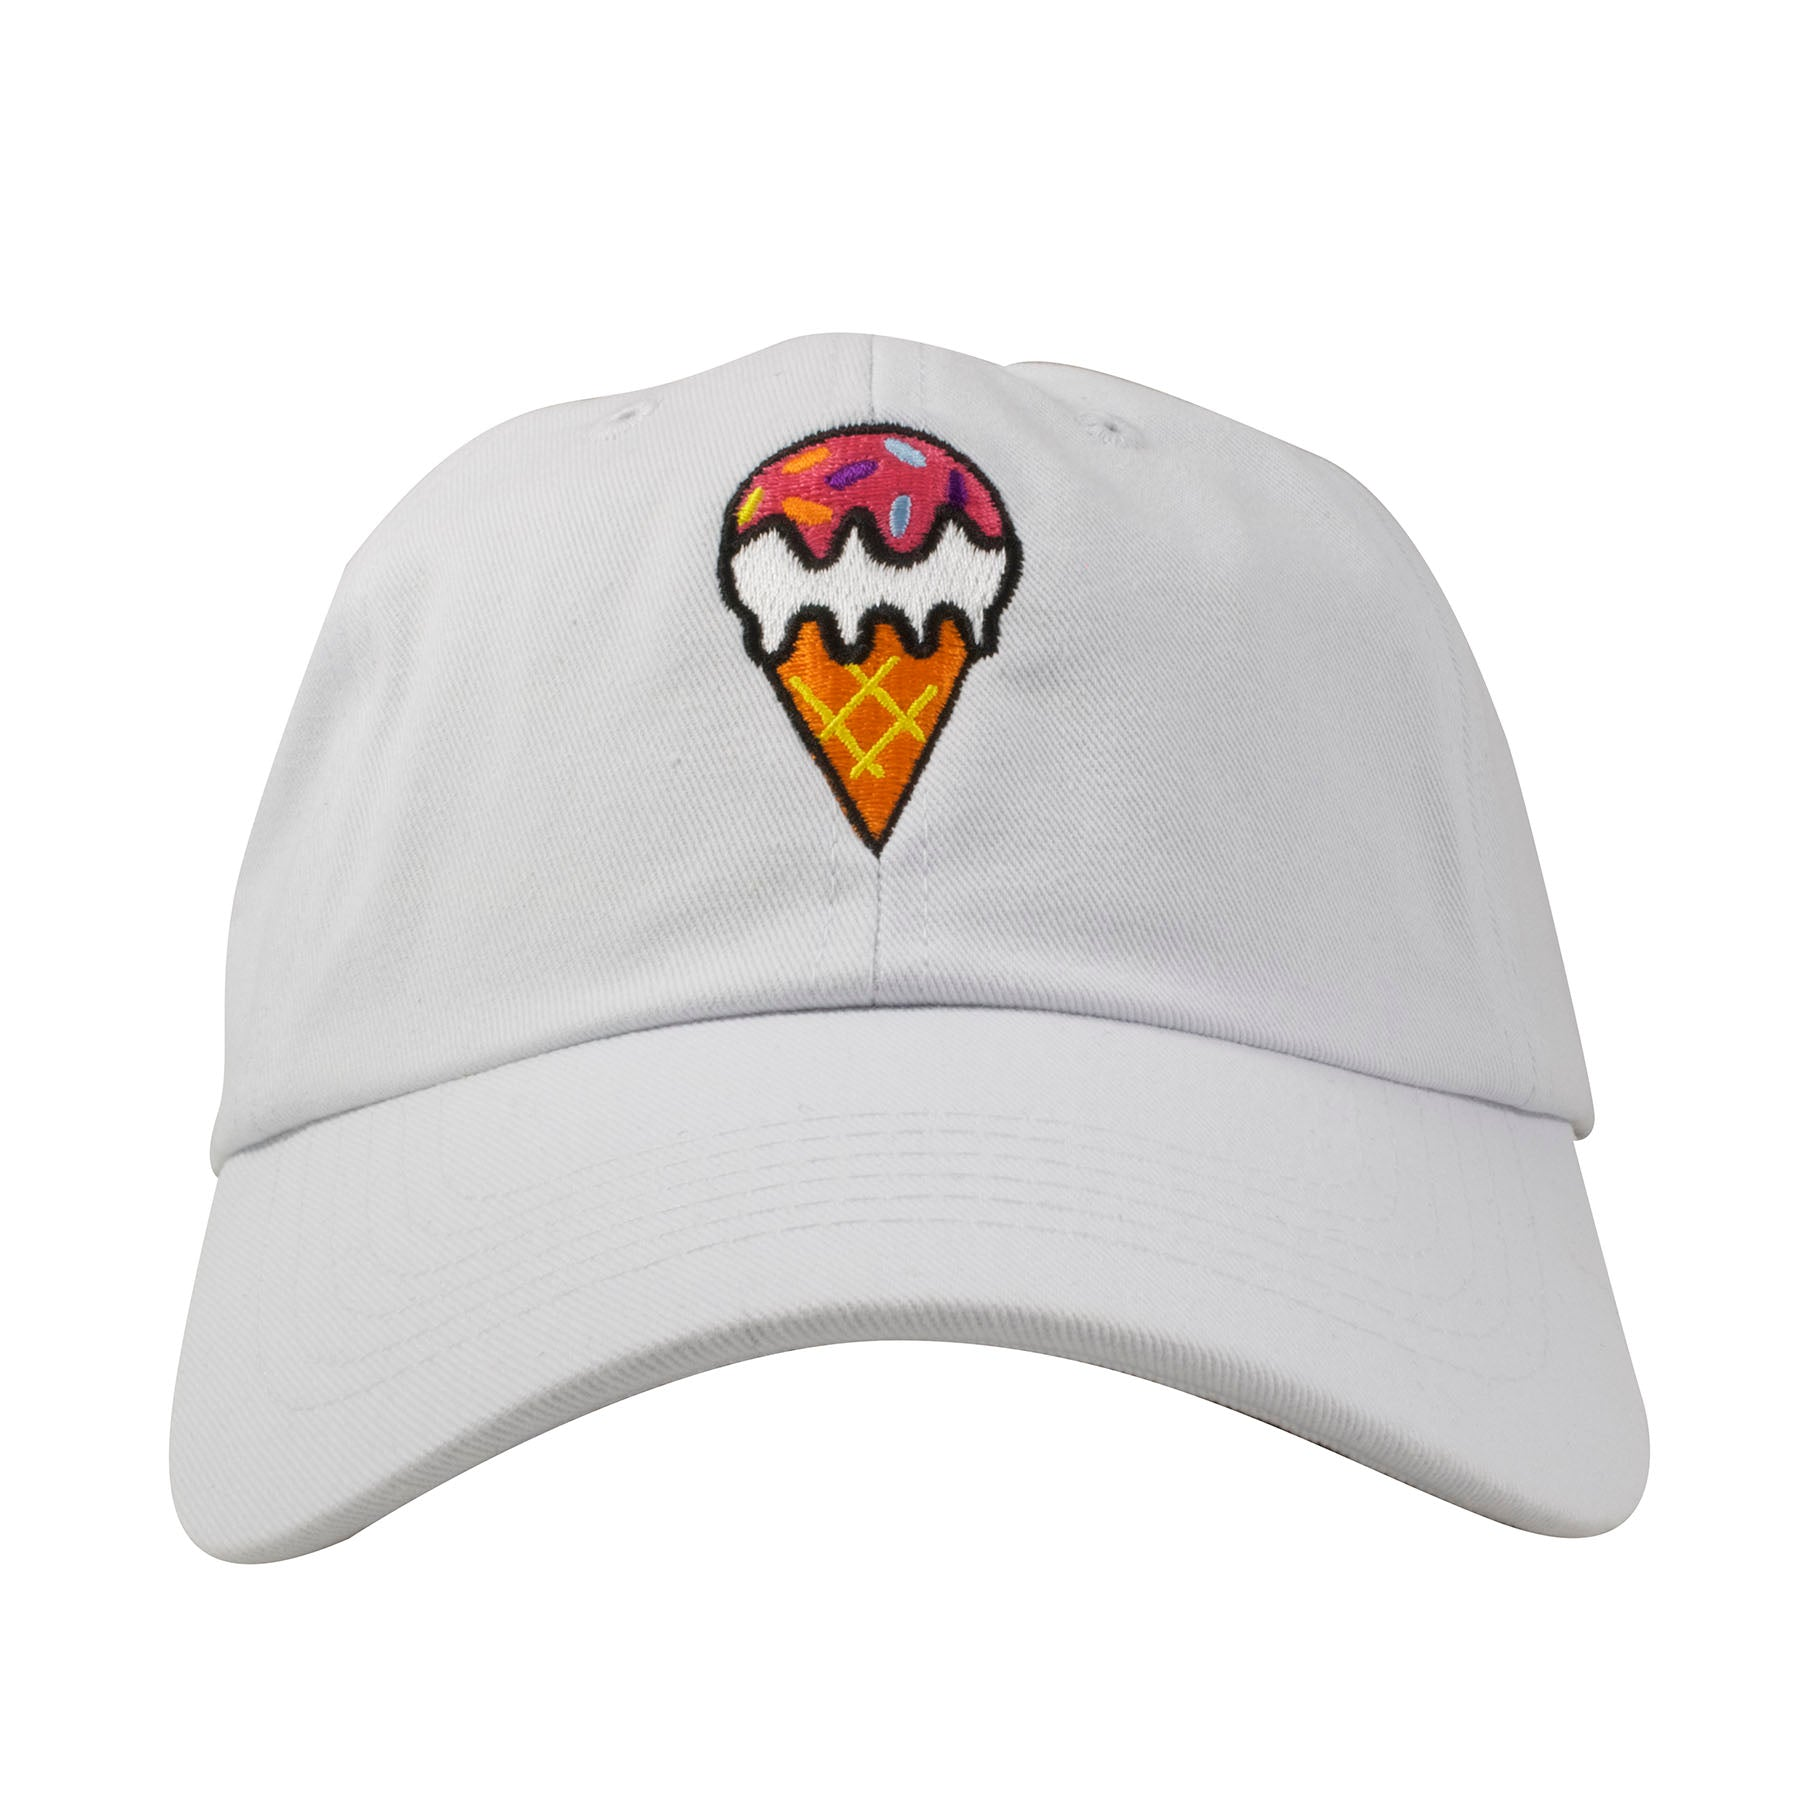 a726979ba41 The ice cream cone embroidered on the front of the white ice cream cone dad  hat